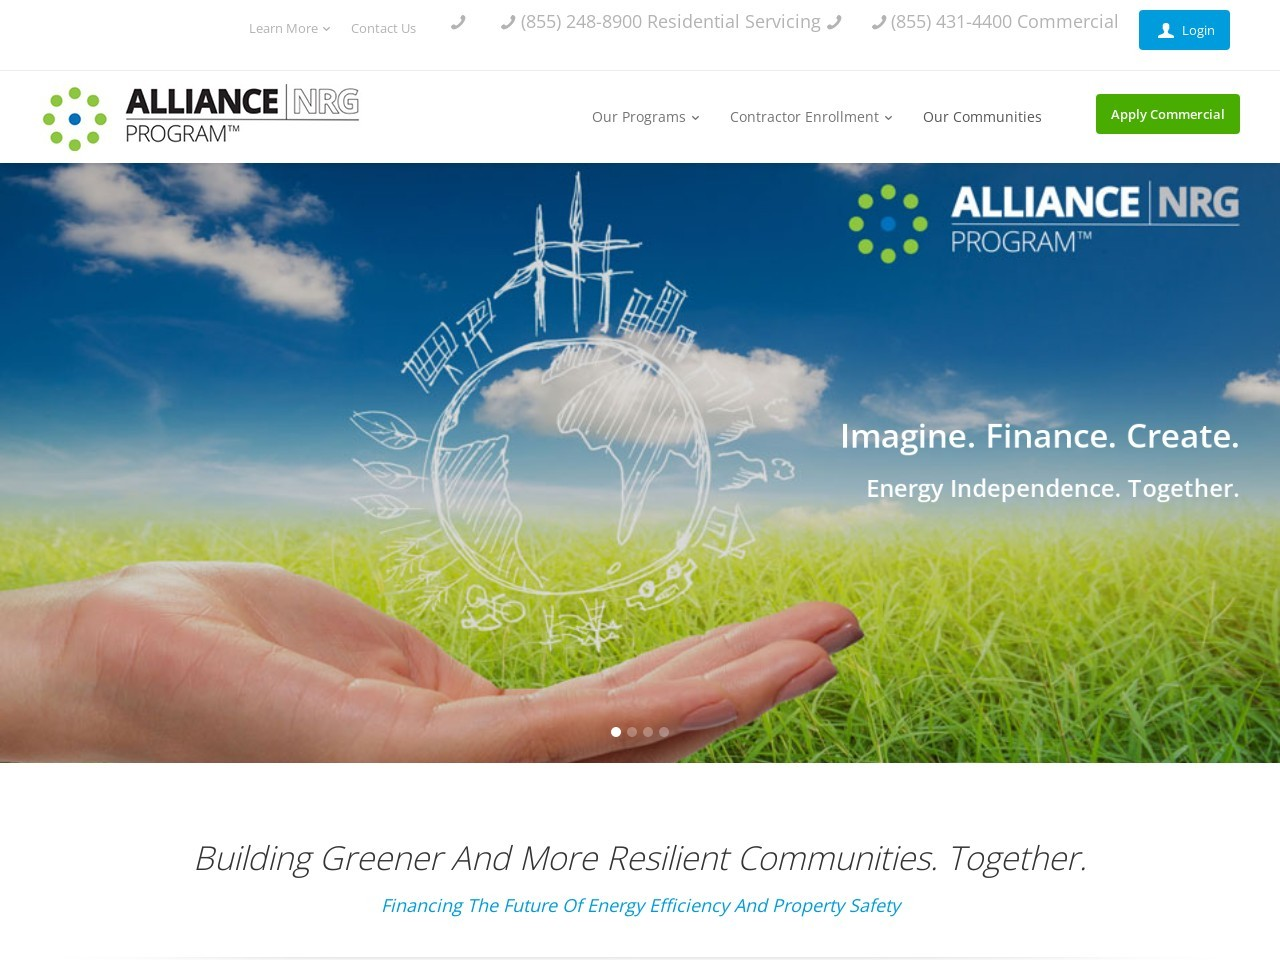 alliancenrg.com